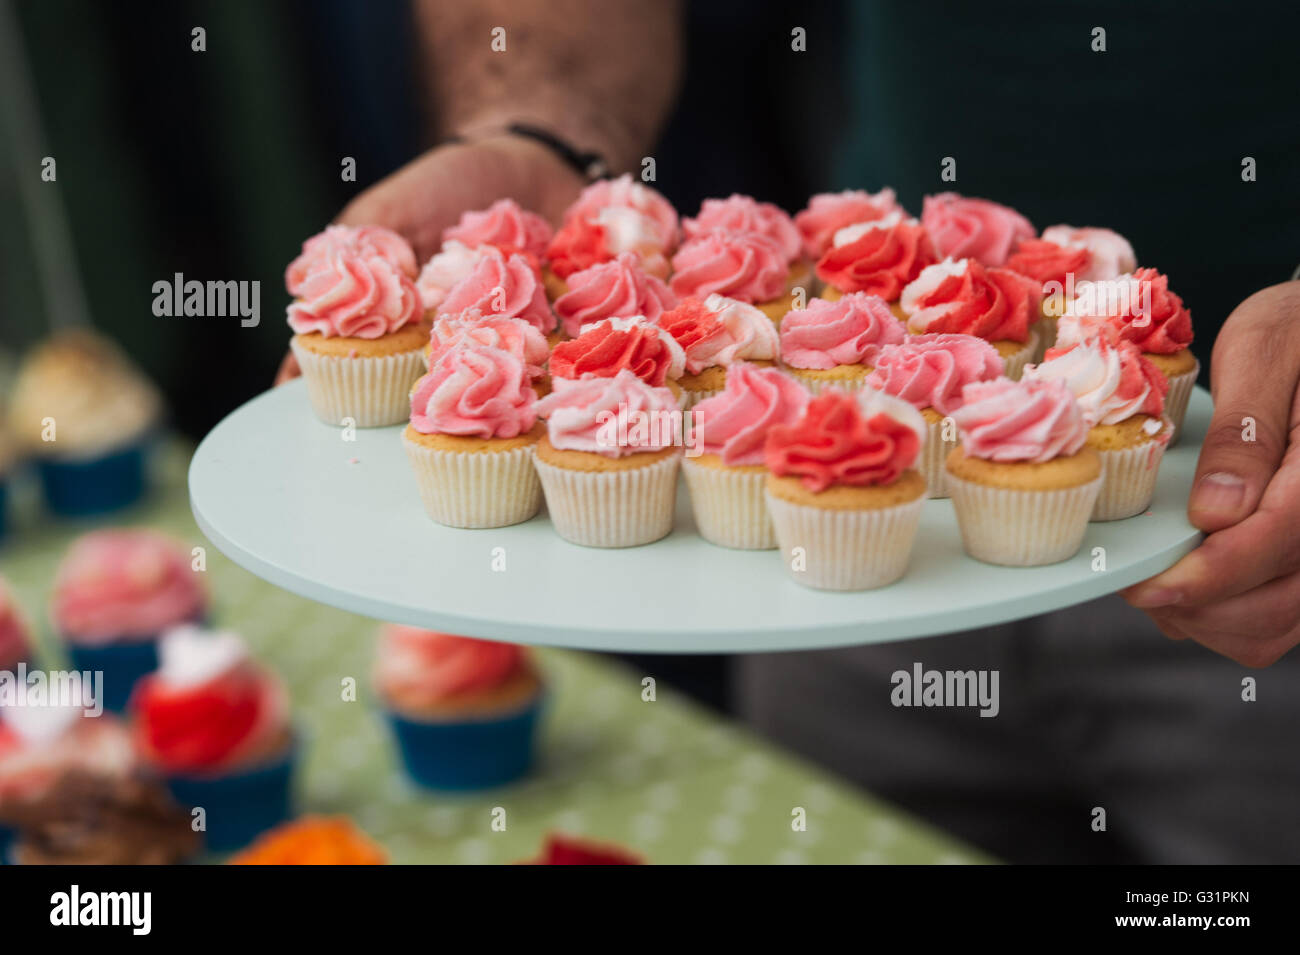 Cupcake for sale at a vintage fayre - Stock Image